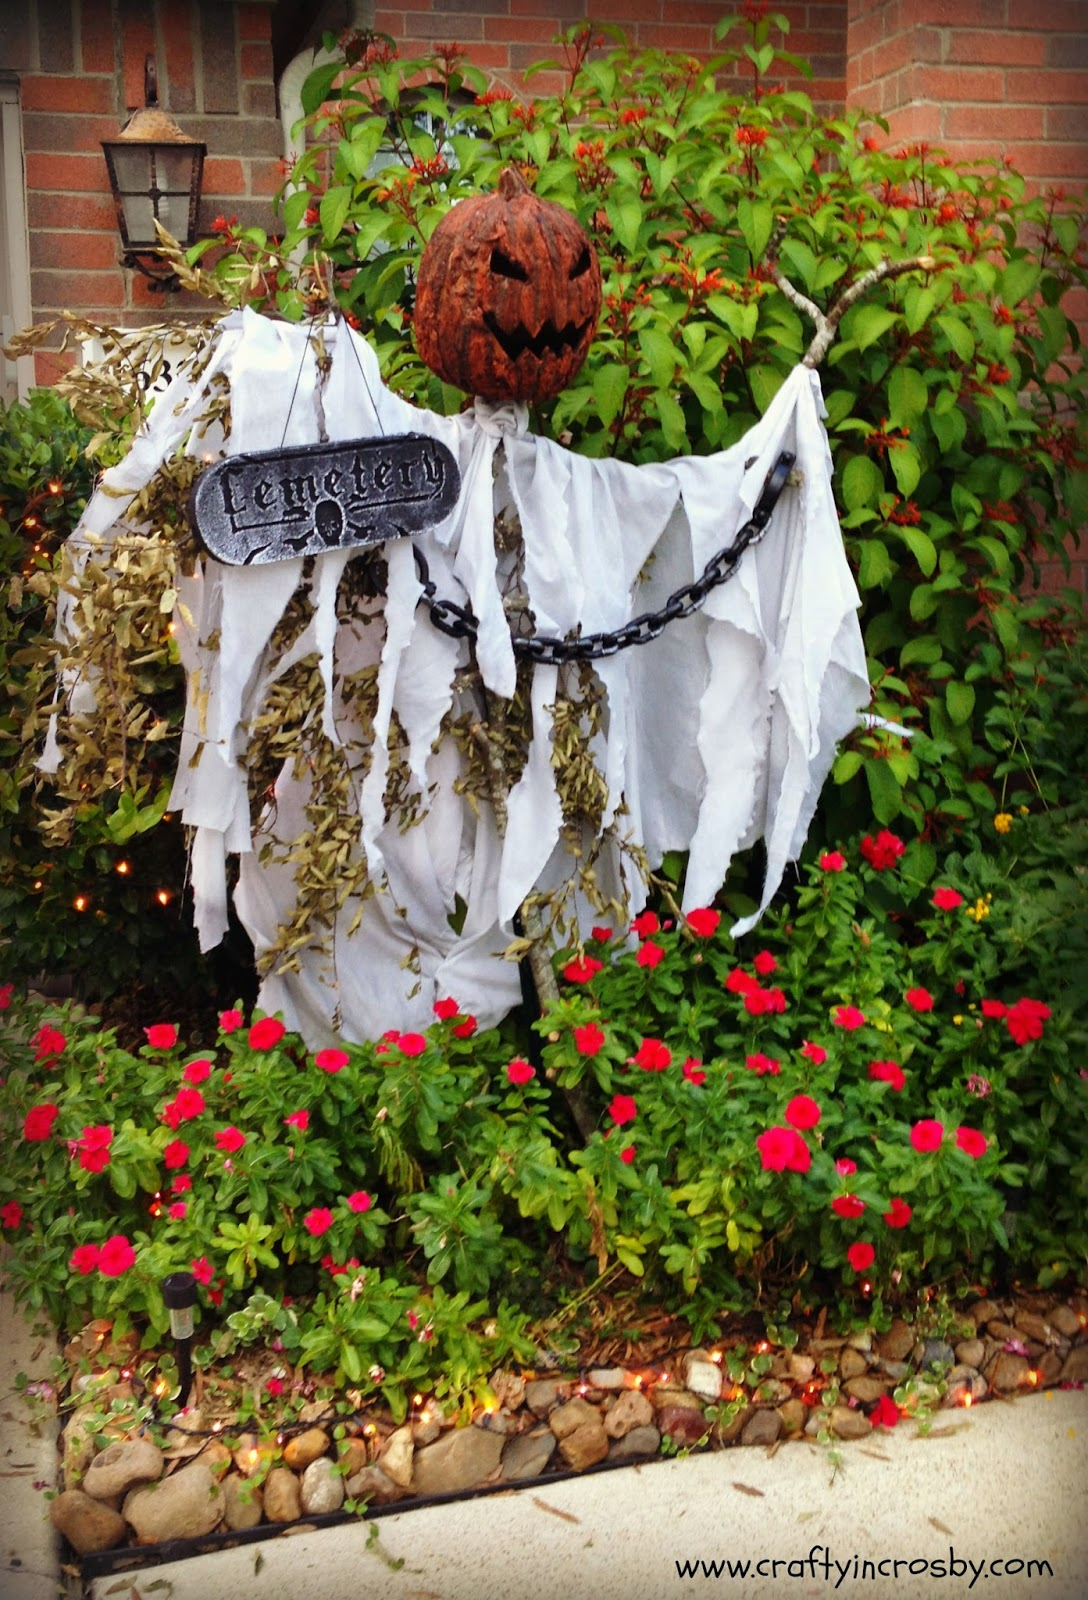 Crafty in Crosby: Creepy Pumpkin Scarecrow